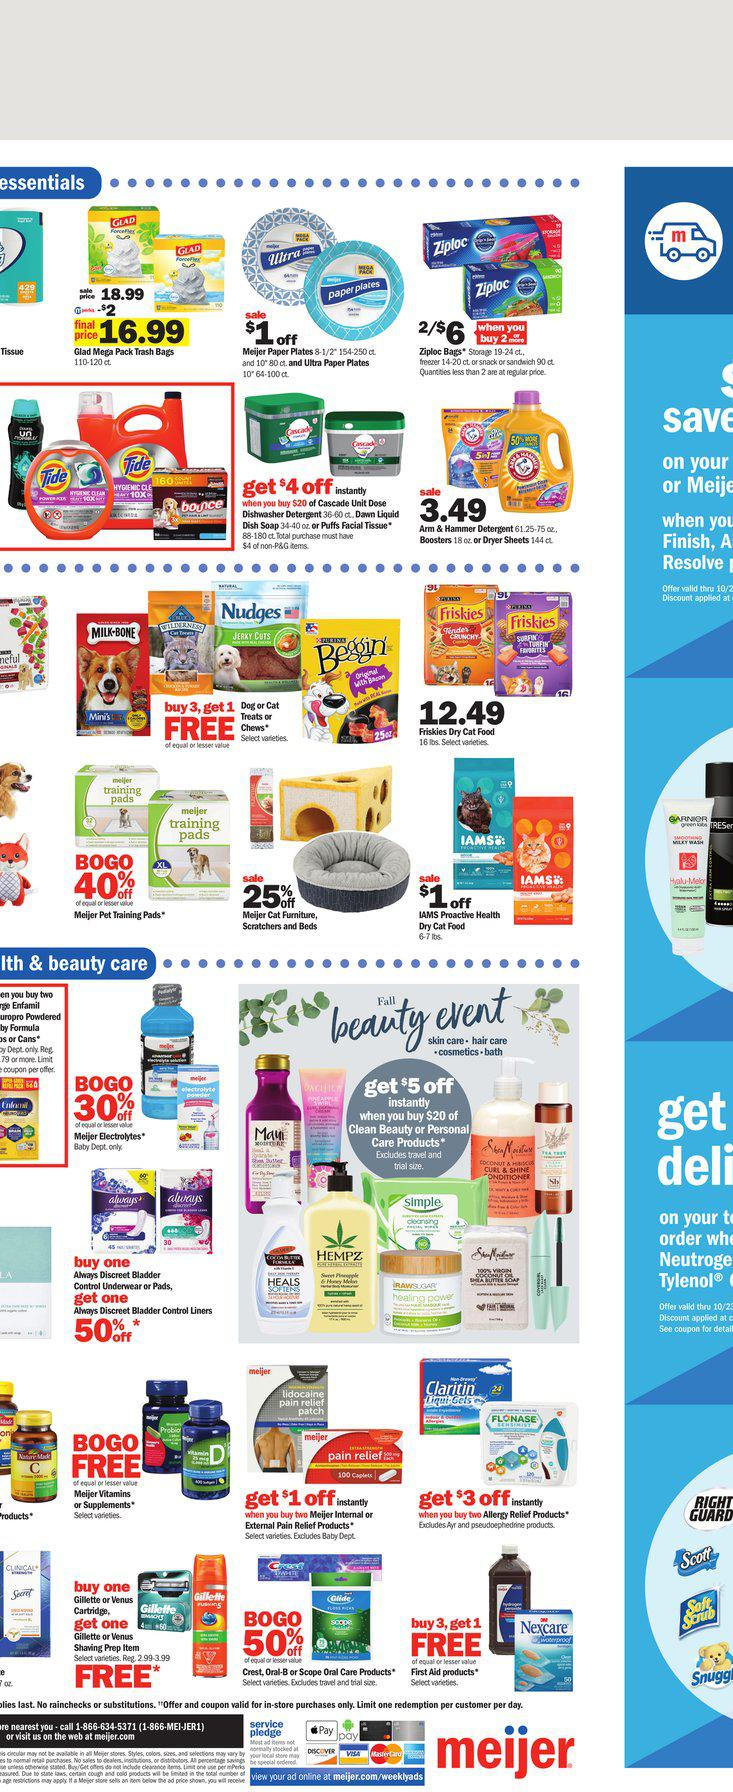 10.10.2021 Meijer ad 12. page